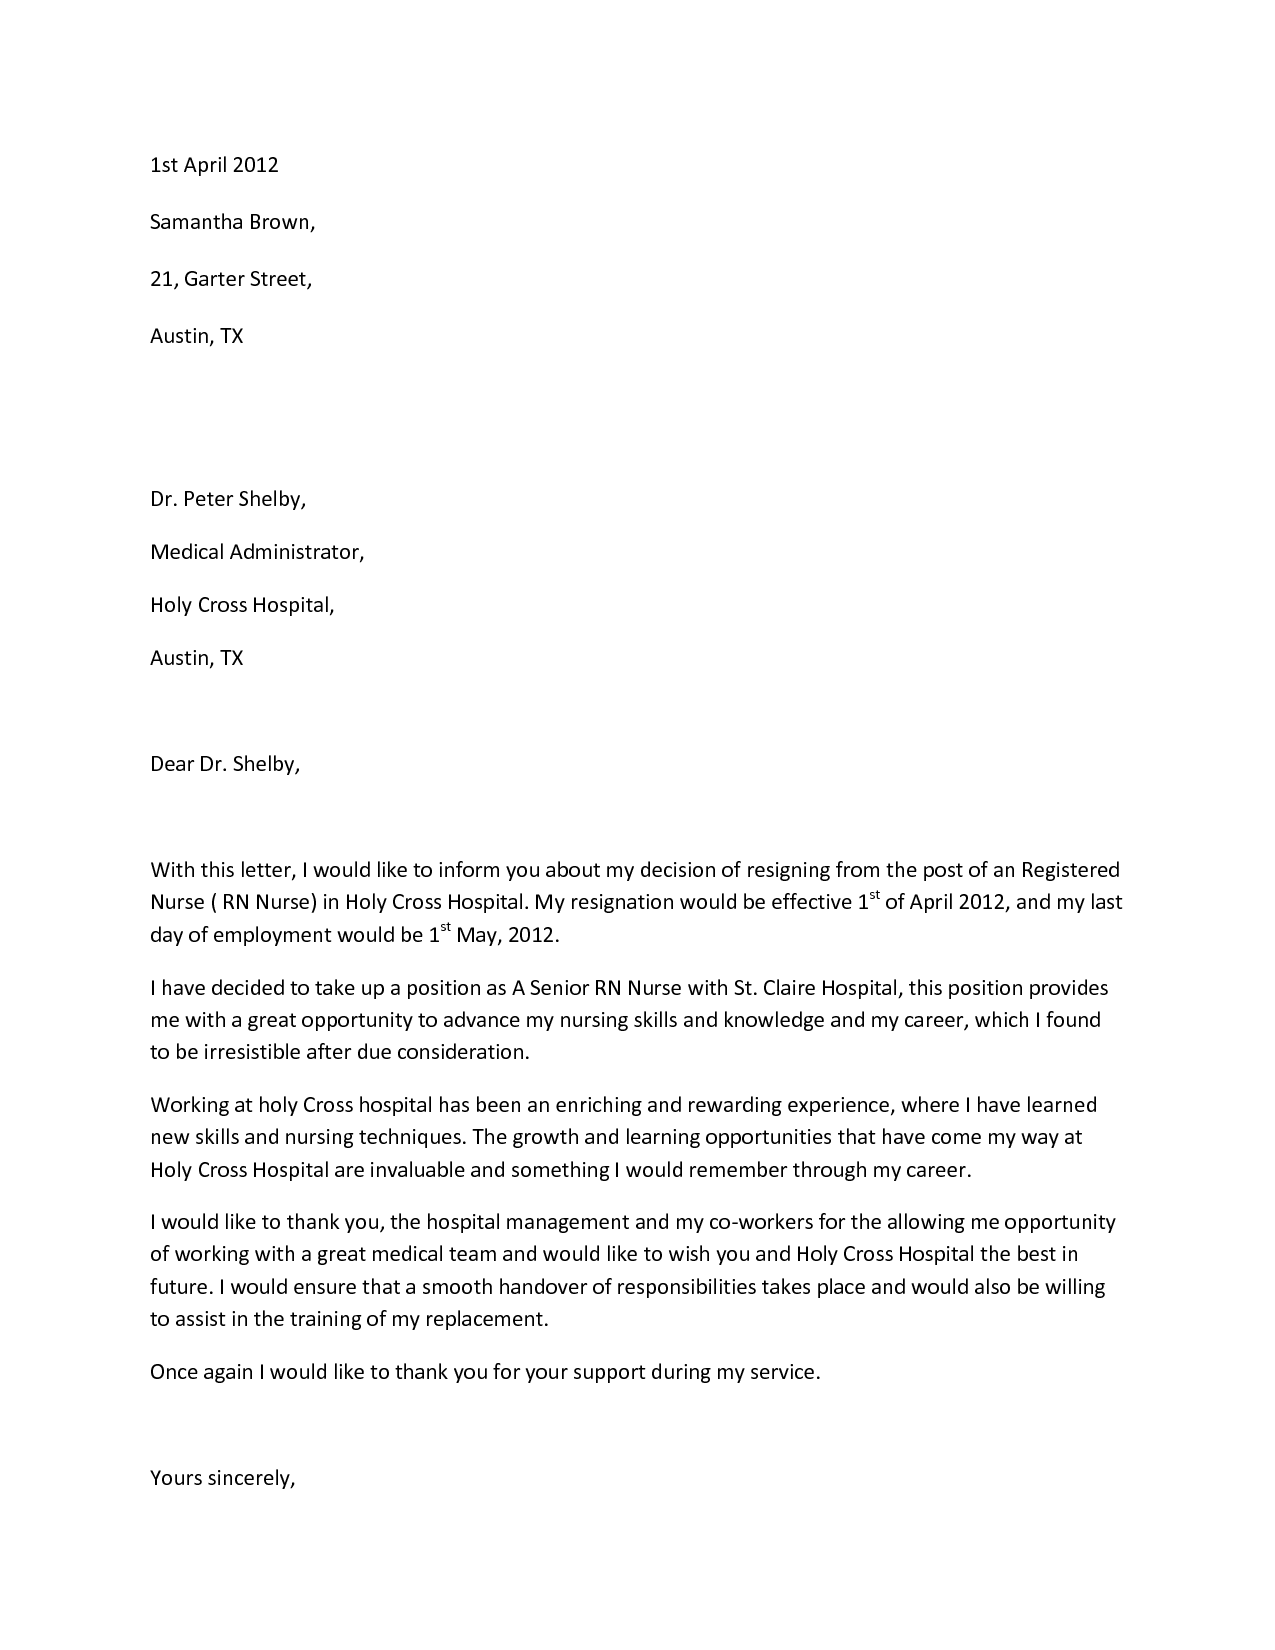 sample resignation letterwriting a letter of resignation email letter sample - Template Letters Of Resignation